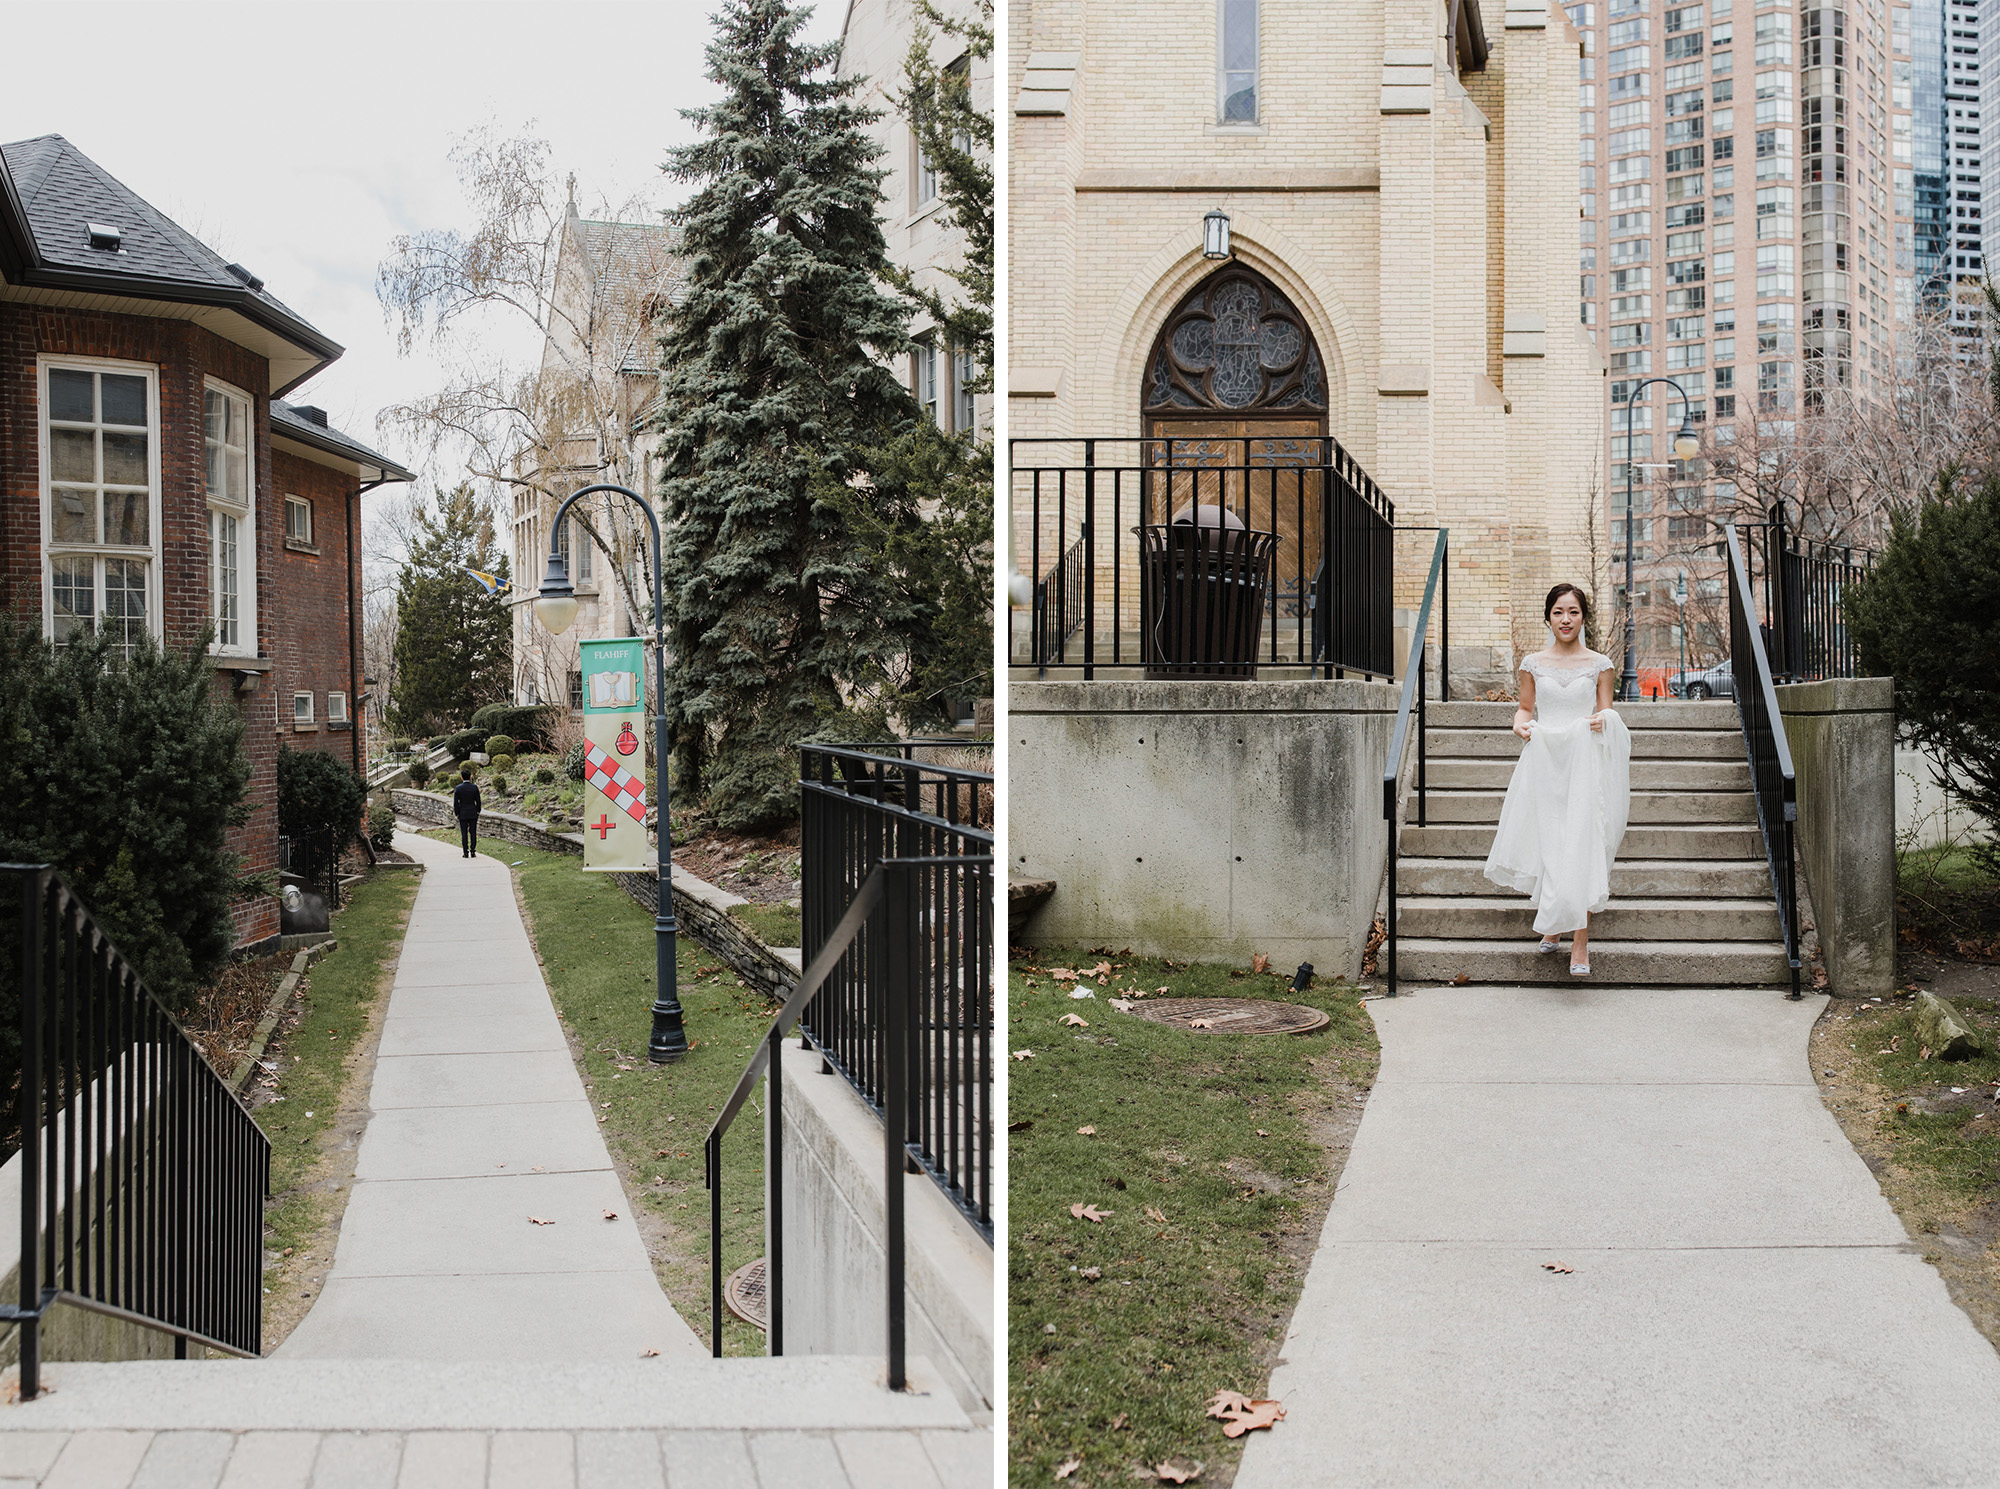 Toronto wedding photographer + First look